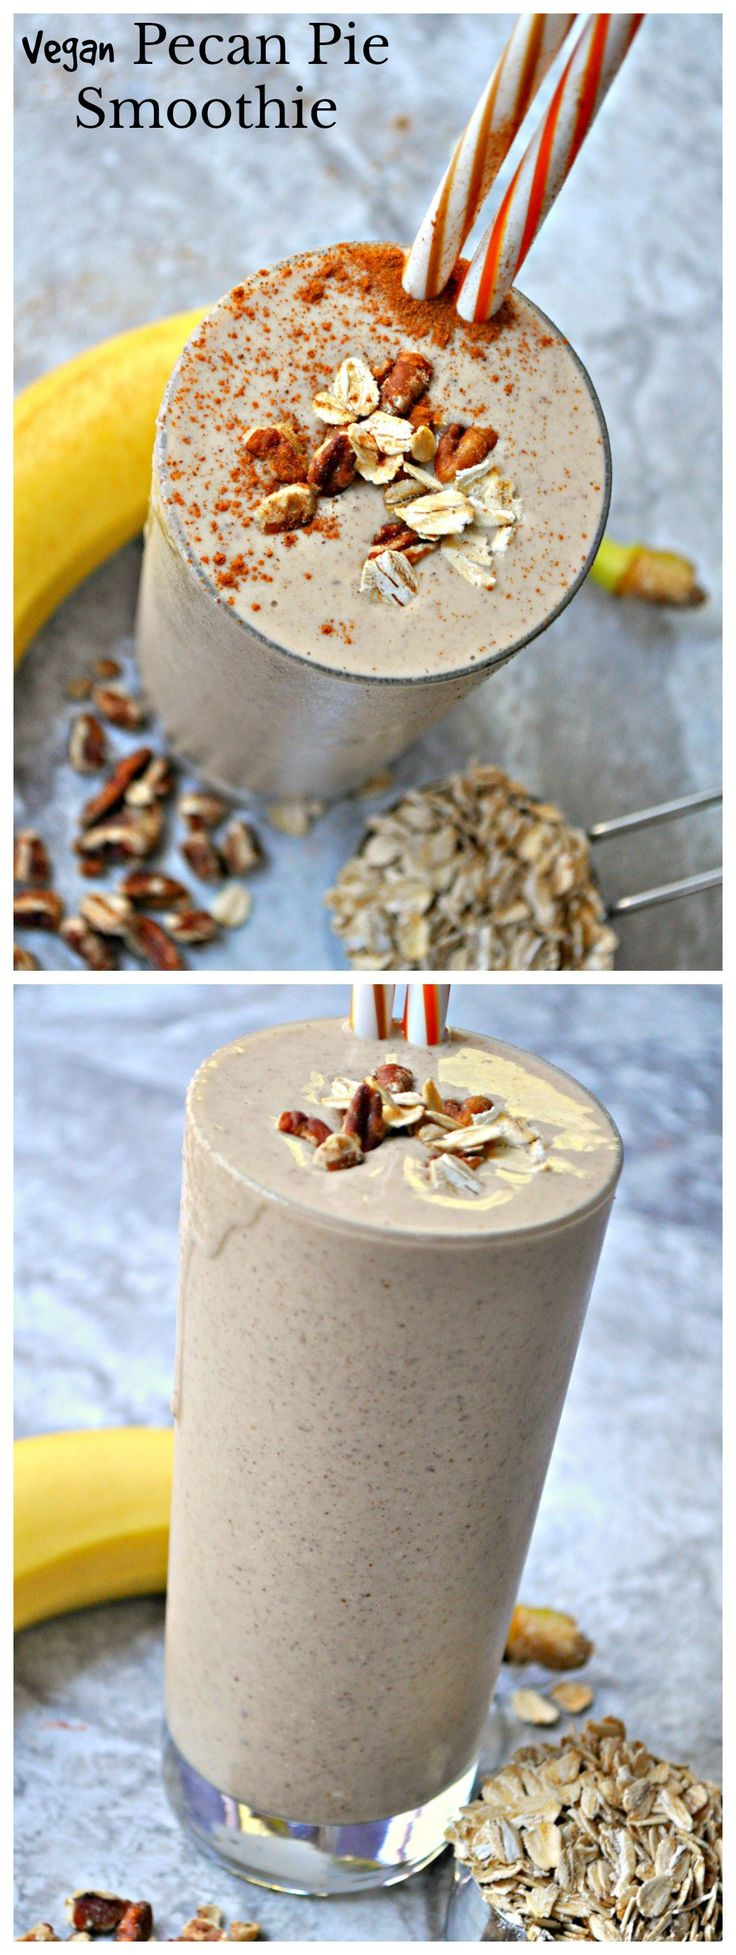 Pecans, oats, banana, cinnamon, and almond milk make the perfect quick breakfast that tastes just like pecan pie! This vegan pecan pie smoothie is amazing.